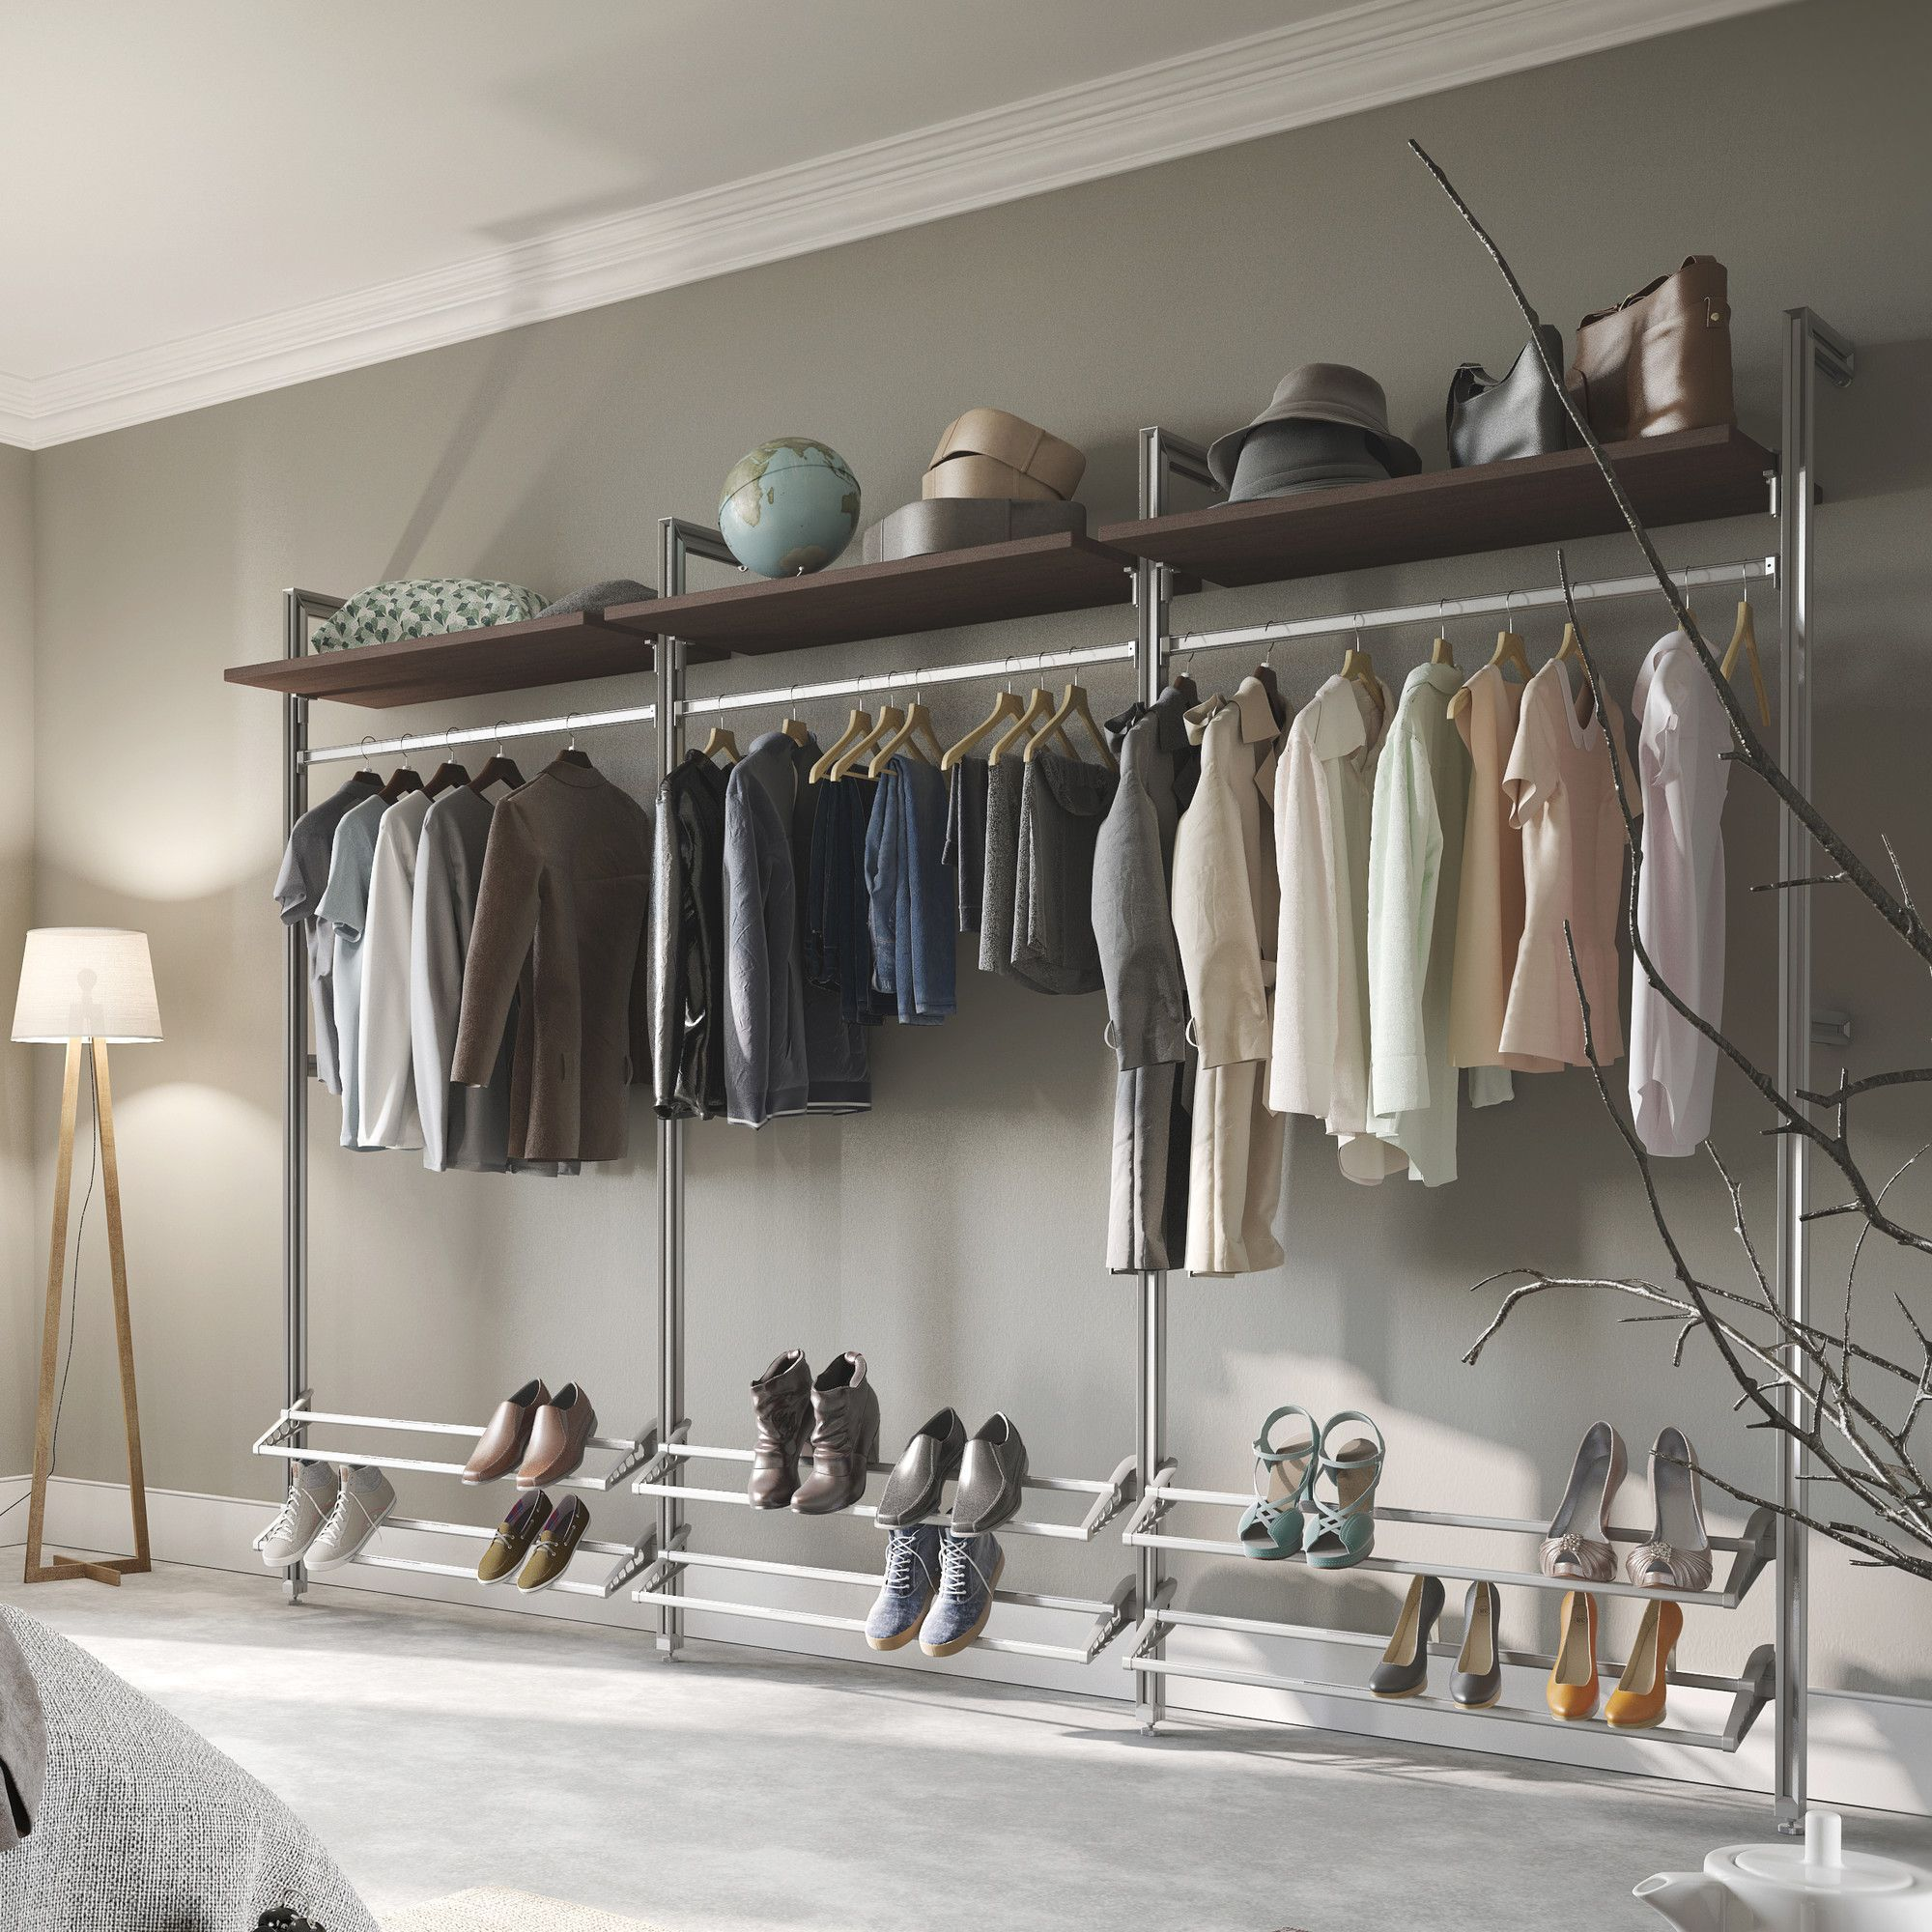 Features:  Includes 4 Floor To Wall Posts, 3 Closet Rod, 6 Shoe Racks, 3  Shelves And 3 Shelf Bracket Pairs.  Aluminum Posts And Rods.